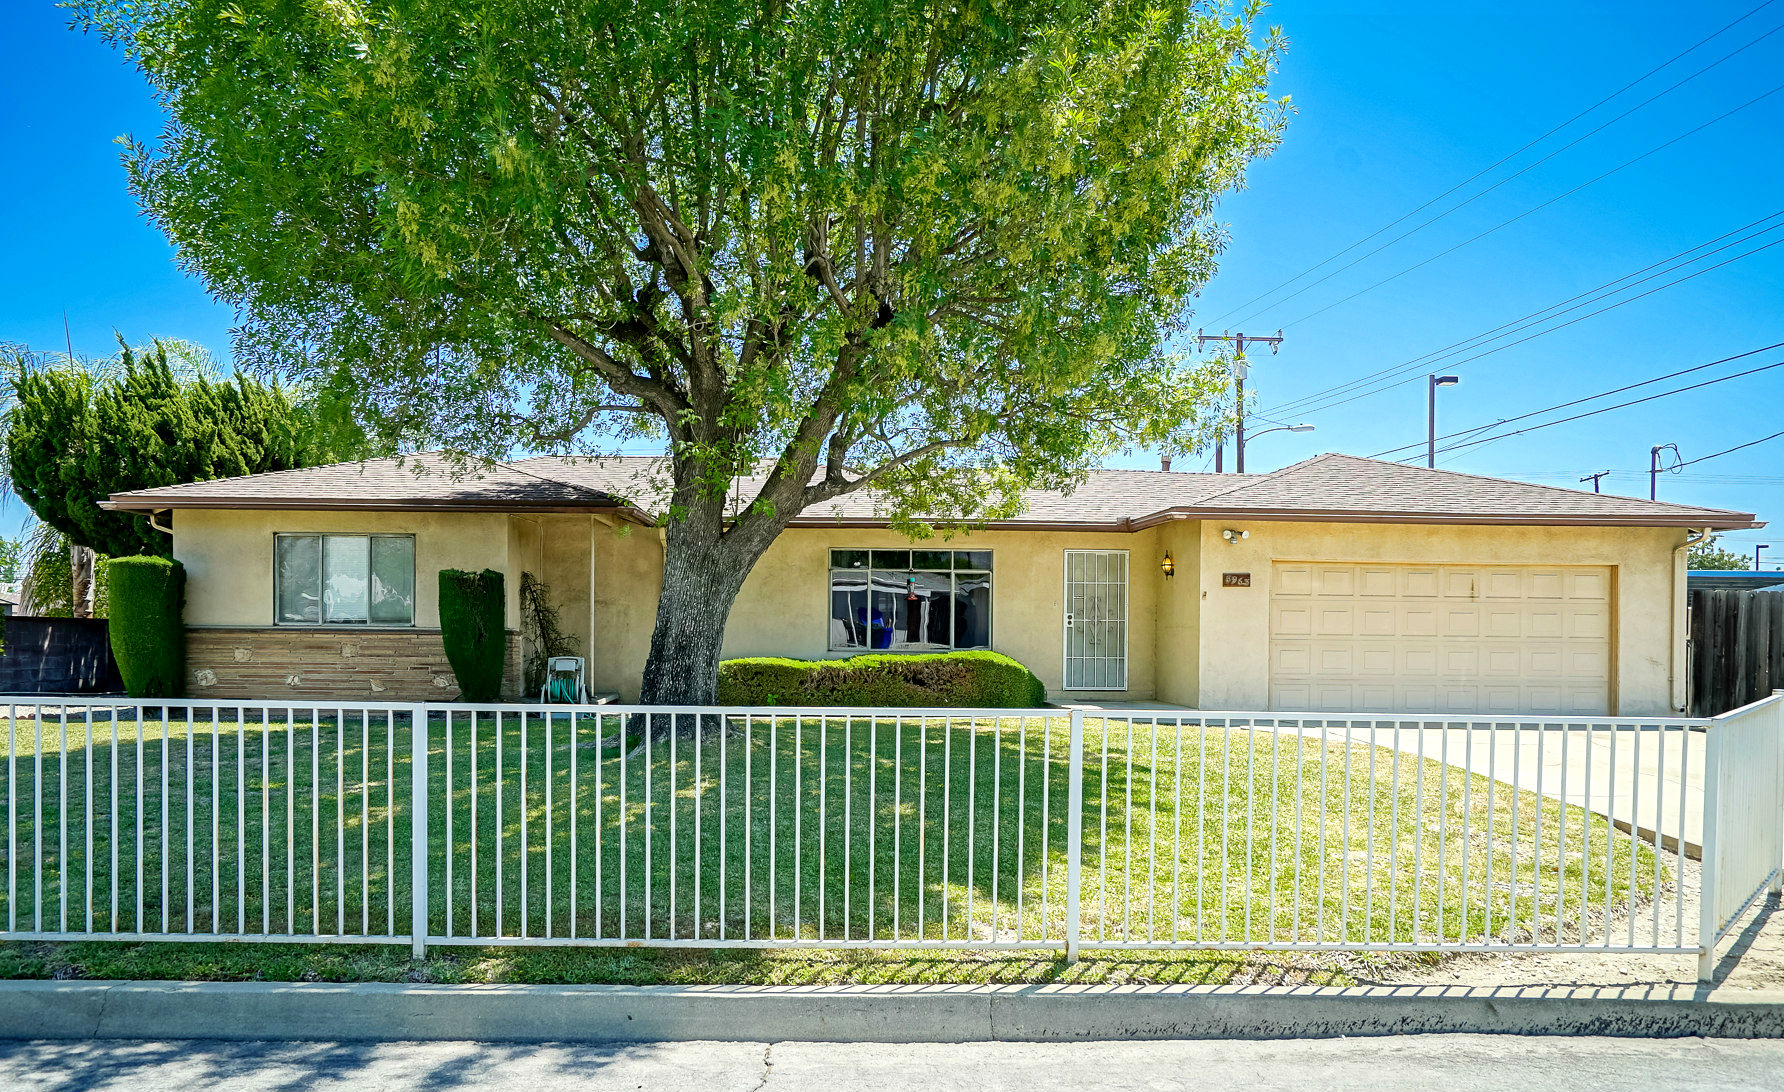 8963 Roberds St., Alta Loma, CA 91701 listed by THE SISTER TEAM